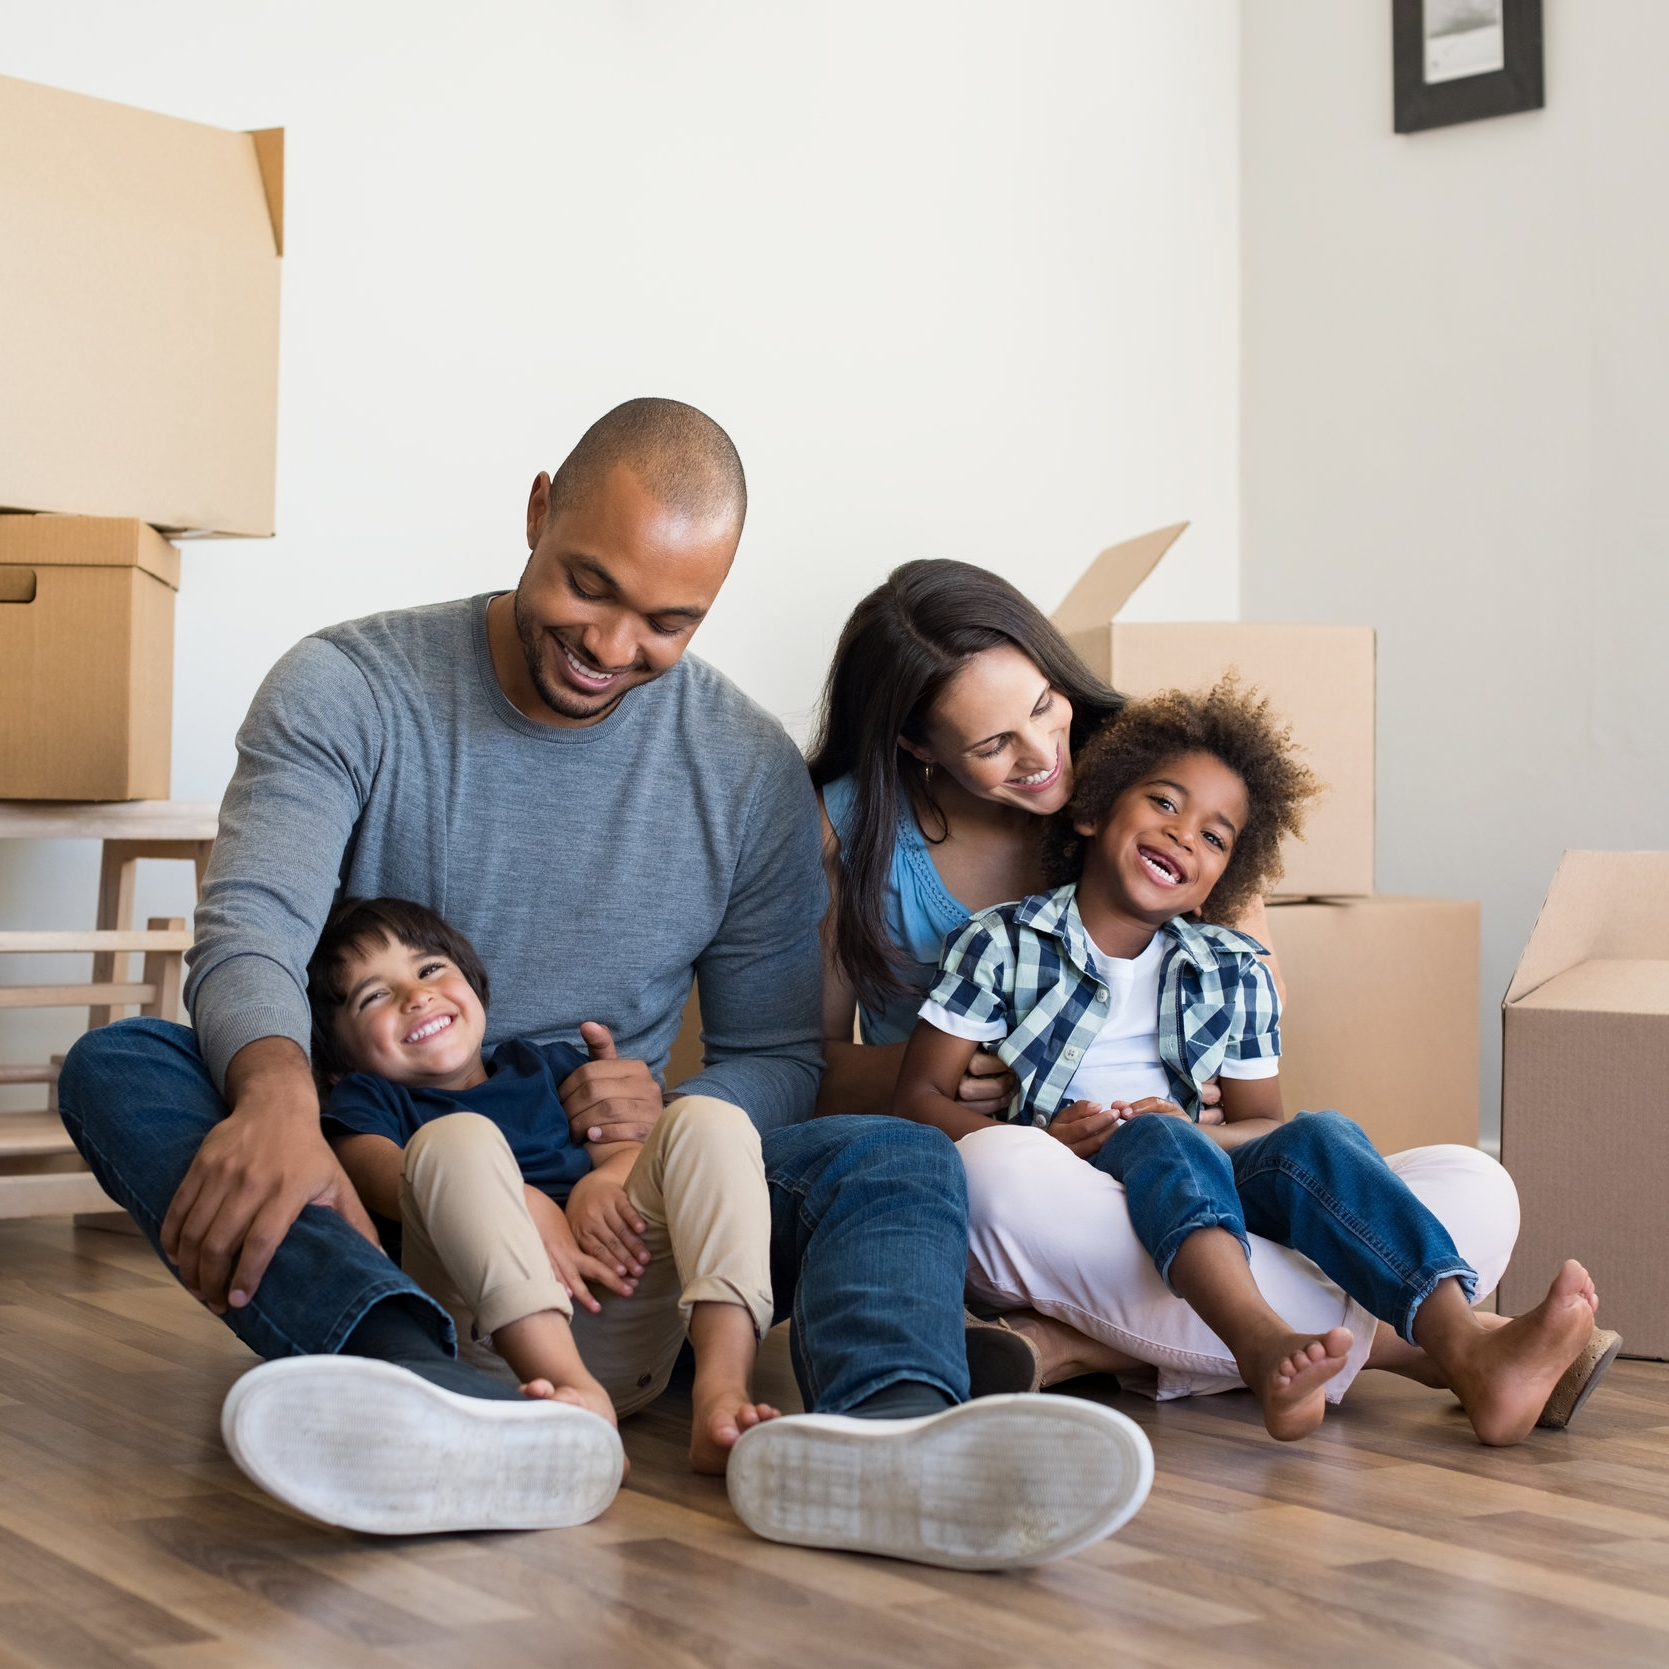 Homeowners - We understand that protecting your home is more than just insuring your house. It's making sure that if something happens, your milestones and personal memories are protected so you can get back on your feet right away. Our network of Home Insurers allows you the choice of finding the right coverage at an affordable price to meet your needs.WAYS YOU CAN SAVE•Deductible Options•Multi-policy Discounts•Smoke Detectors•Fire Alarm Systems•Deadbolts, Fire Extinguishers•And More...